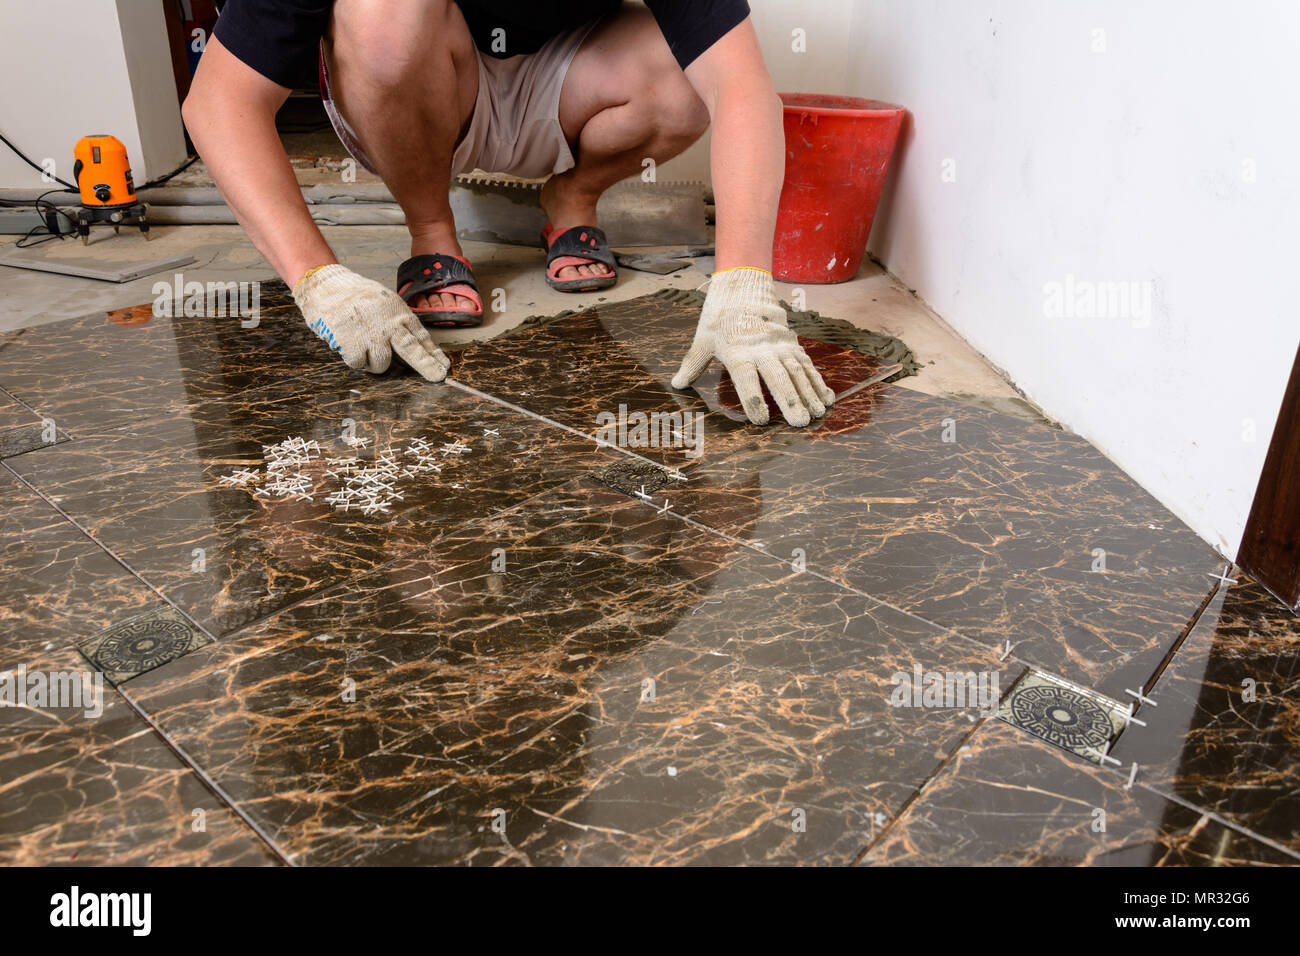 A Man Places A Ceramic Tile Under Pressure Over A Glue In Room Of